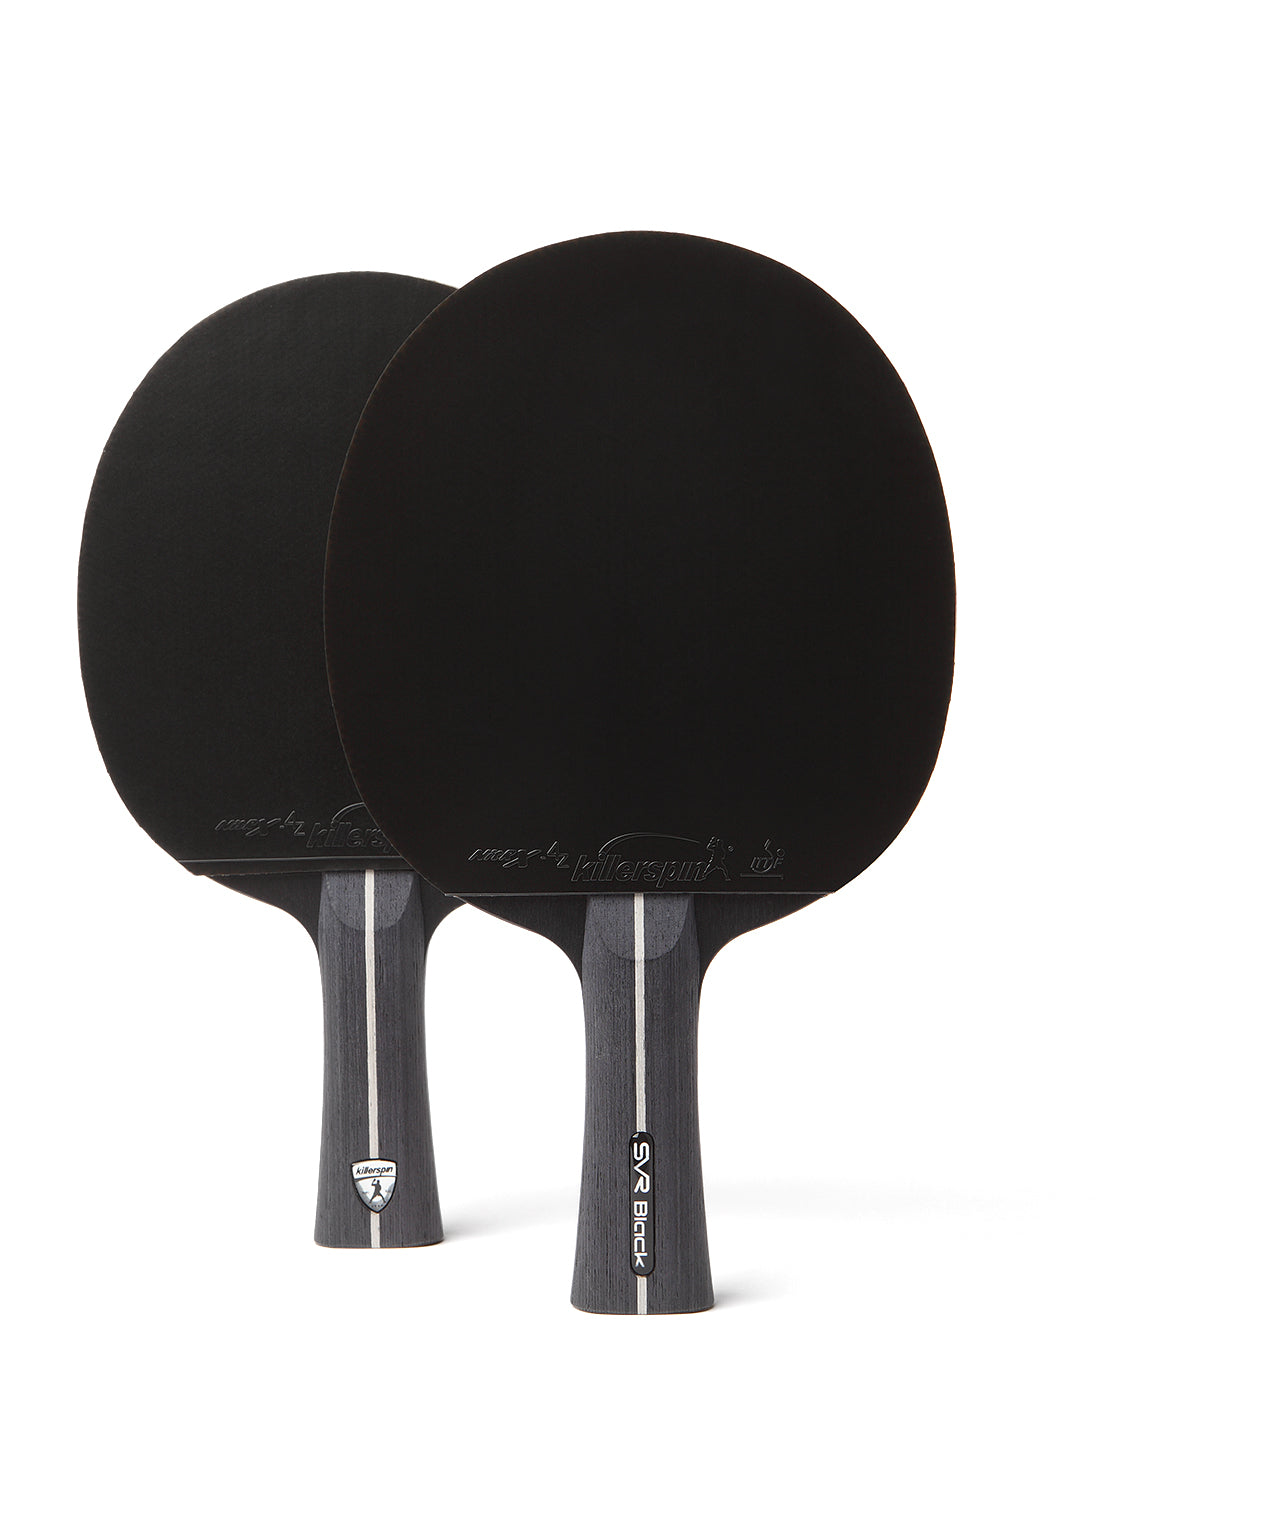 Killerspin SVR Ping Pong Paddle Set SVR 2U Black - 2U Paddles